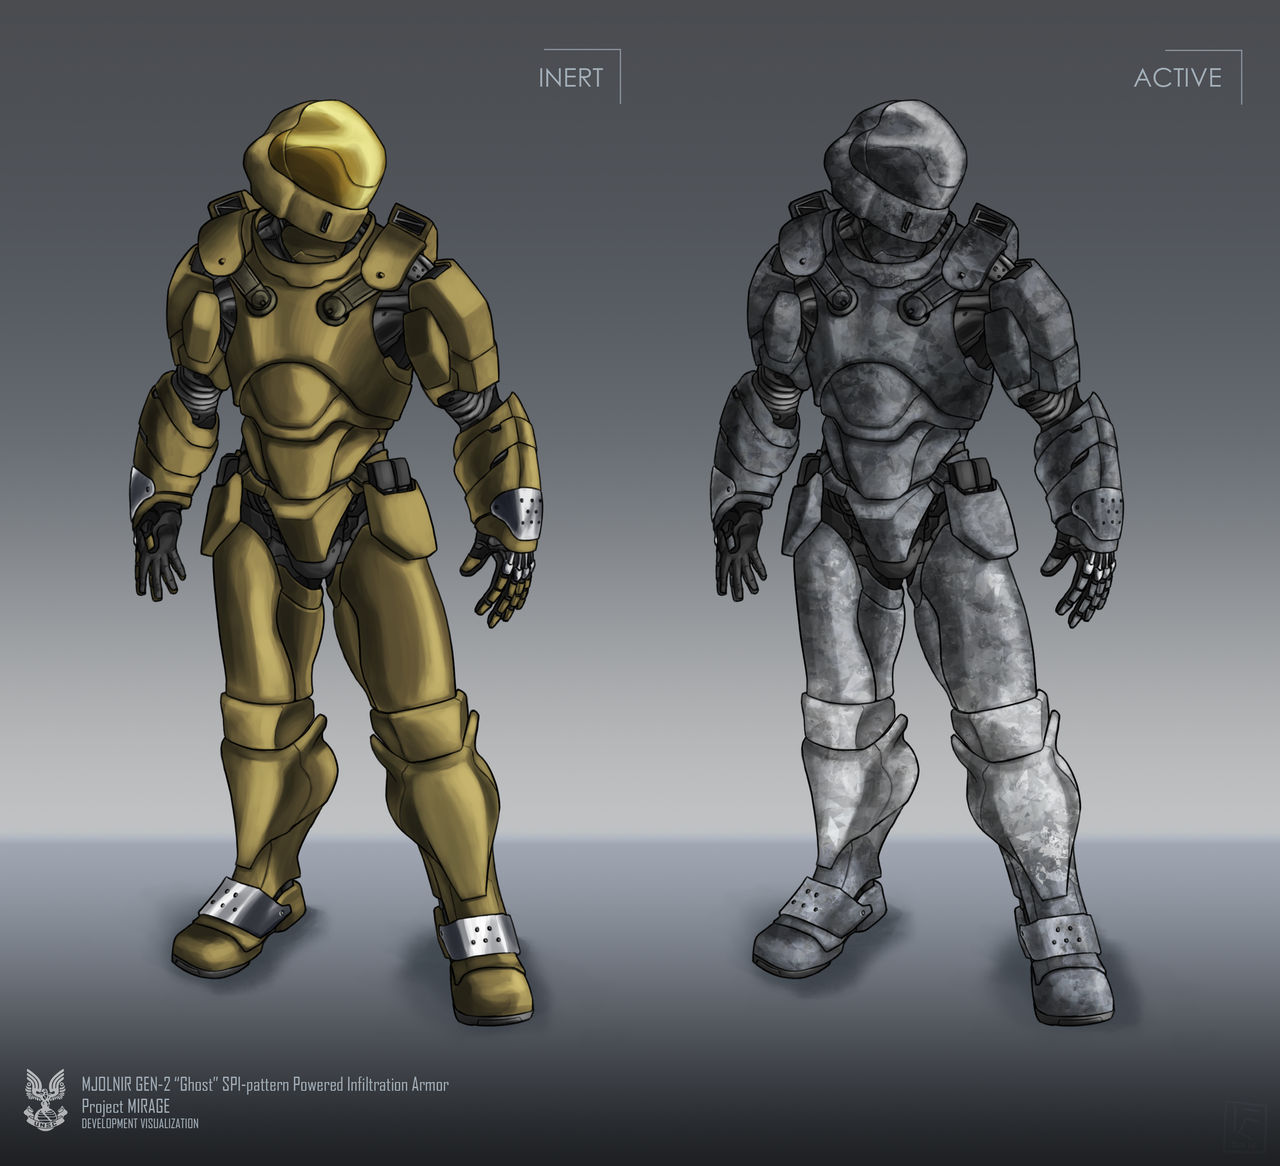 GHOST Powered Infiltration Armor